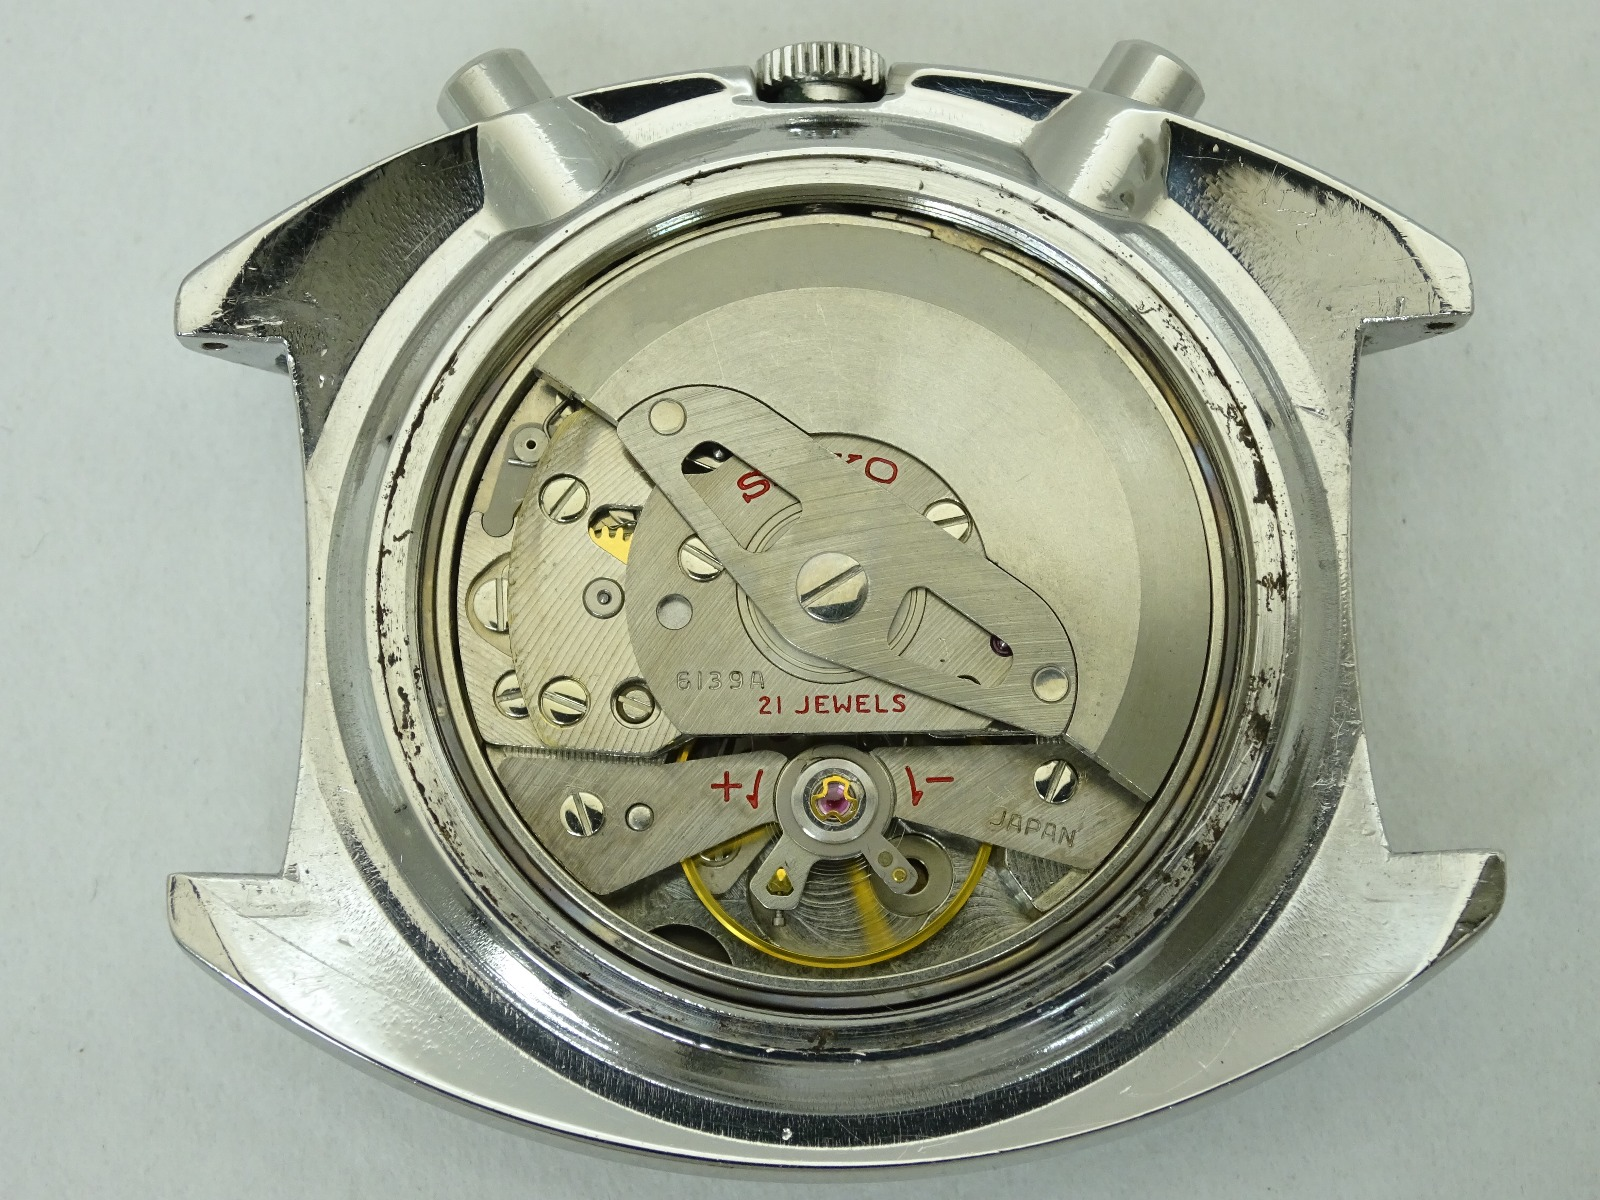 Vintage 1969 JAPAN SEIKO 5 SPORTS SPEED-TIMER  6139-6000 21Jewels Automatic.